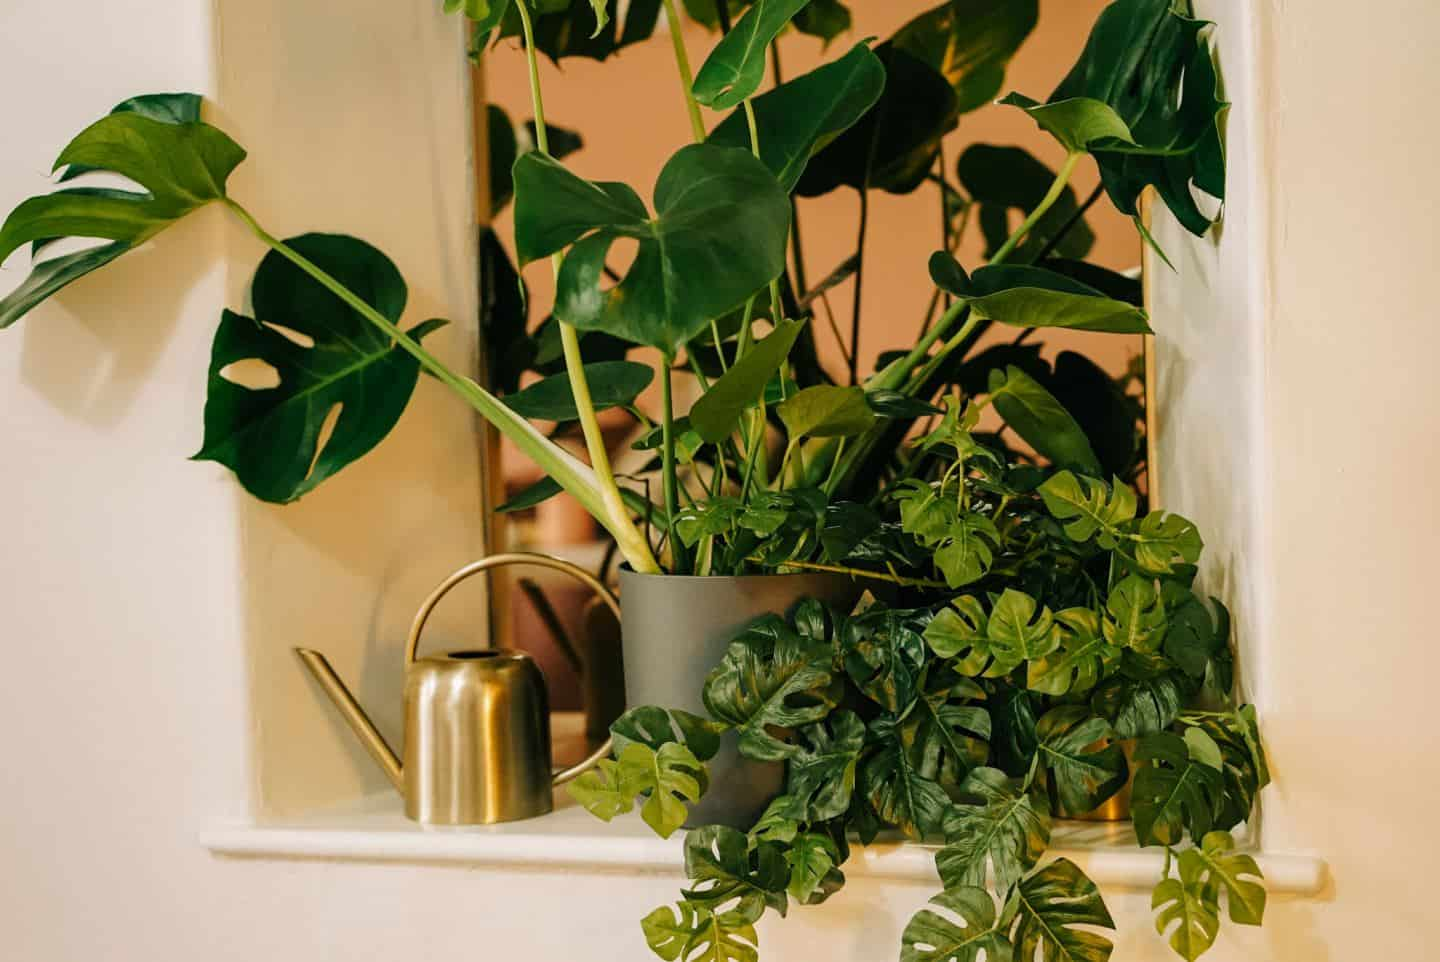 Real and faux plants at The Tribe, a coworking space for female entrepreneurs in Totnes, Devon